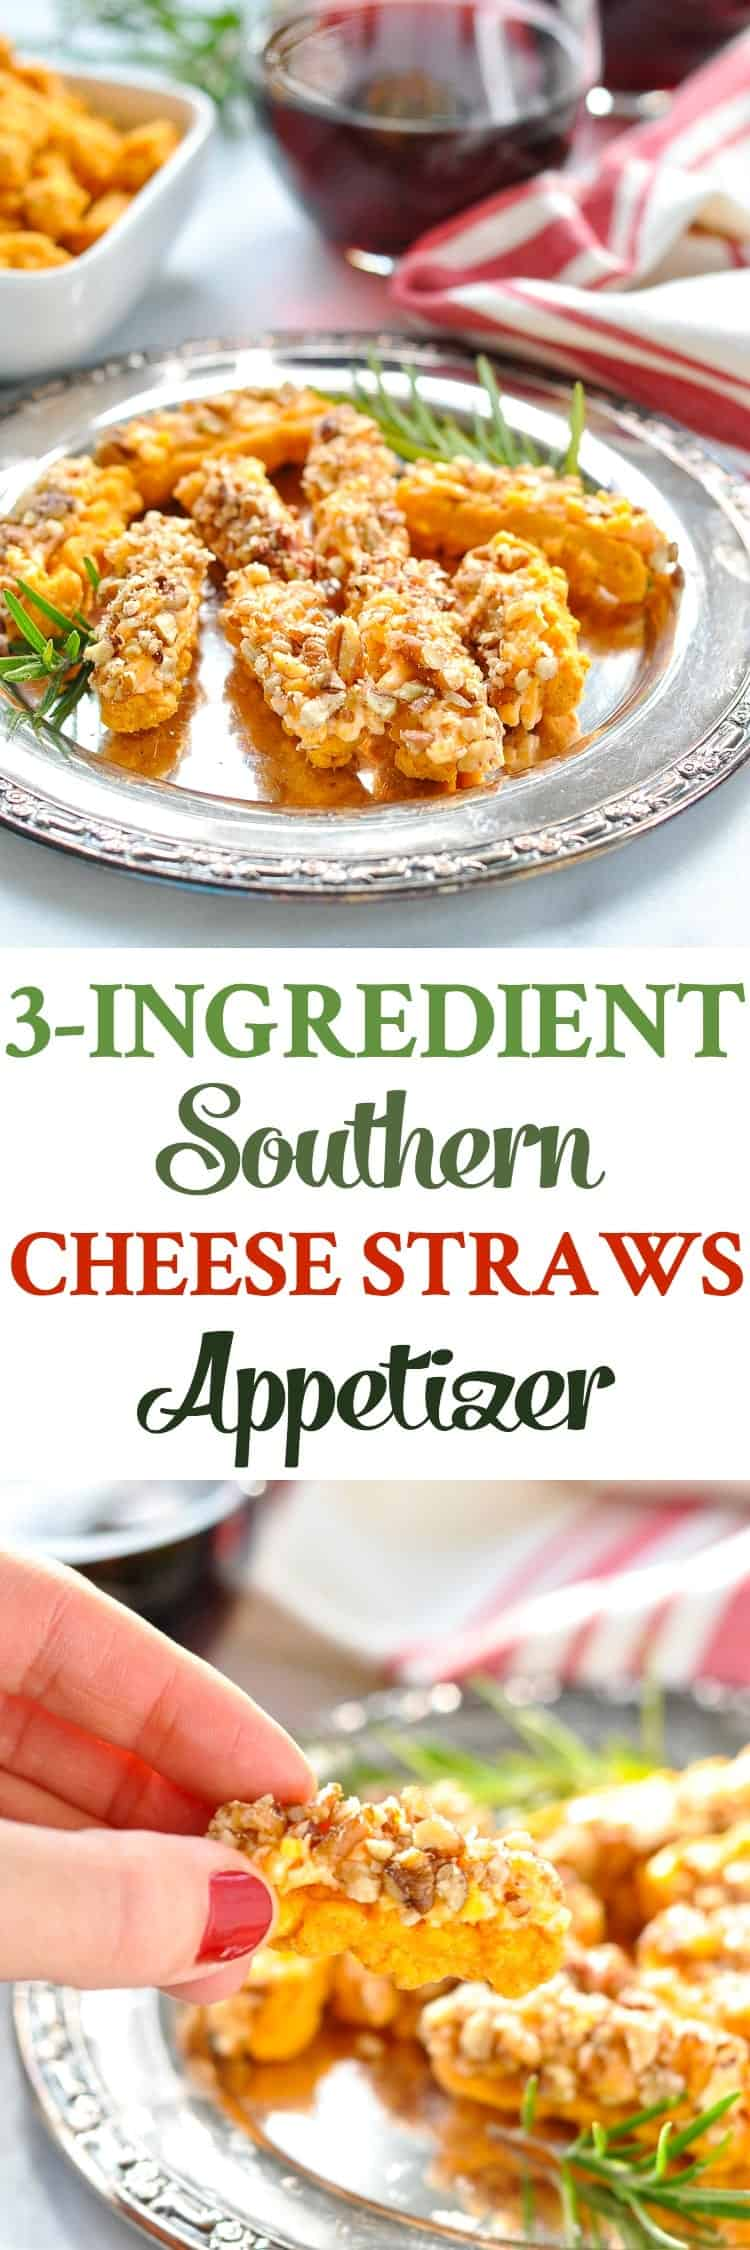 3 ingredient southern cheese straws appetizers the seasoned mom aunt bees 3 ingredient southern cheese straws appetizers are an easy appetizer recipe for any forumfinder Gallery